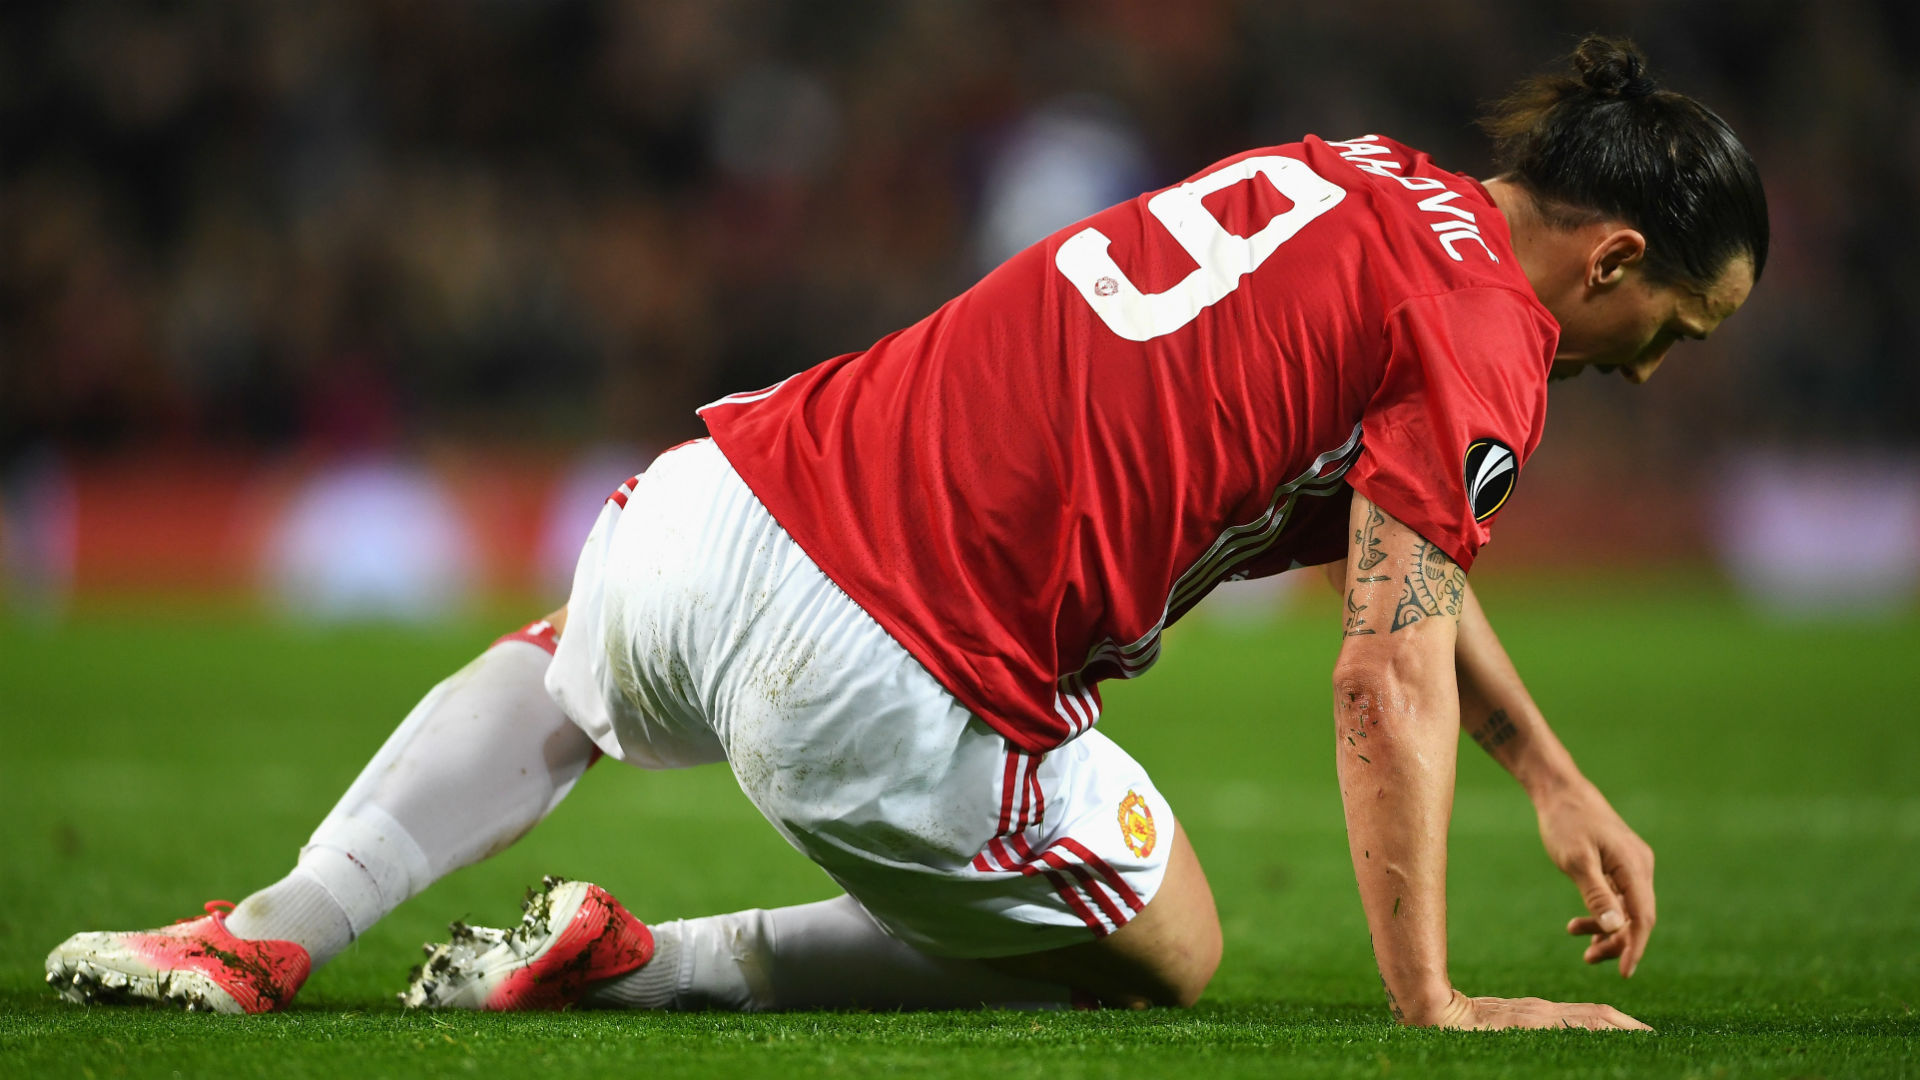 Zlatan Ibrahimovic and Marcos Rojo Injuries Overshadow Manchester United's Europa League Progression